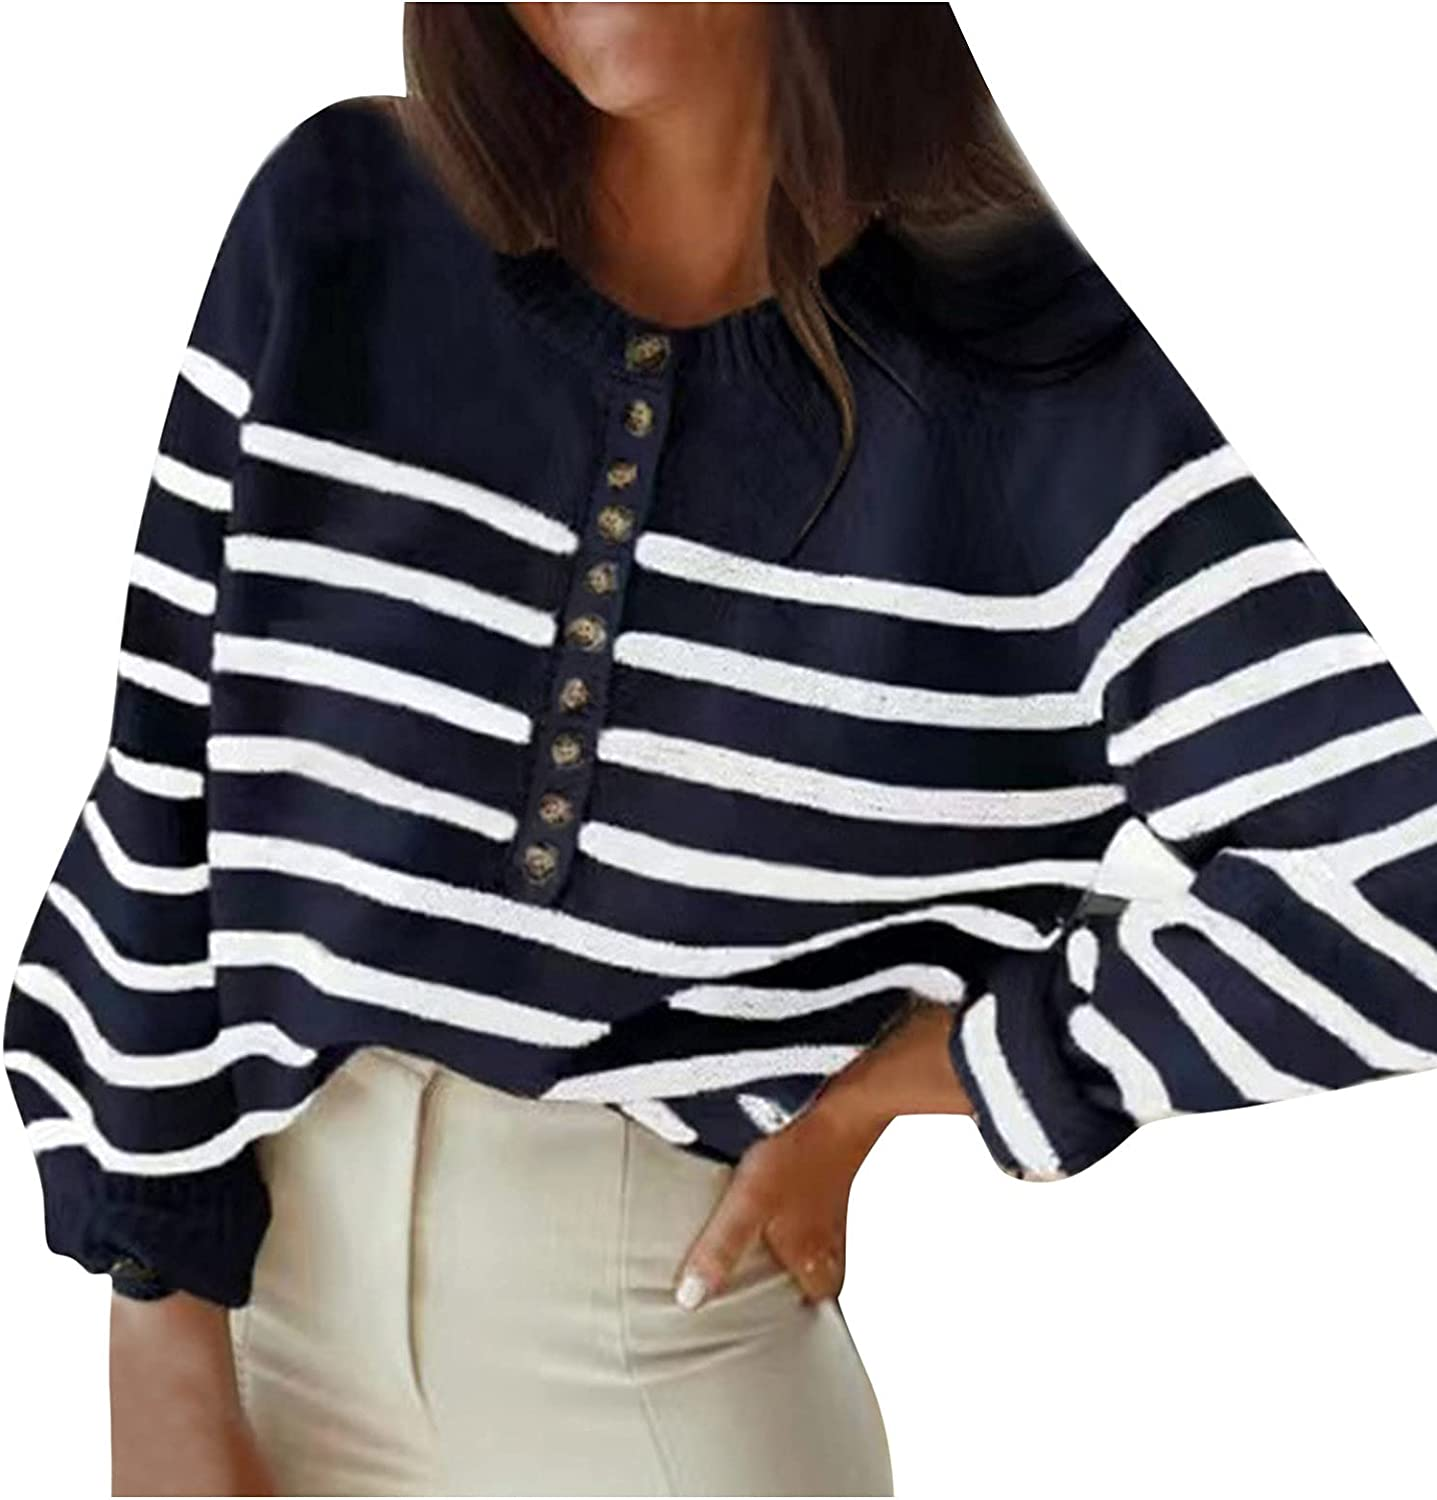 Women's Knit Cardigan Sweater Long Sleeve Button Down Crewneck Cute Striped Basic Classic Casual Soft Knitted Sweater Top